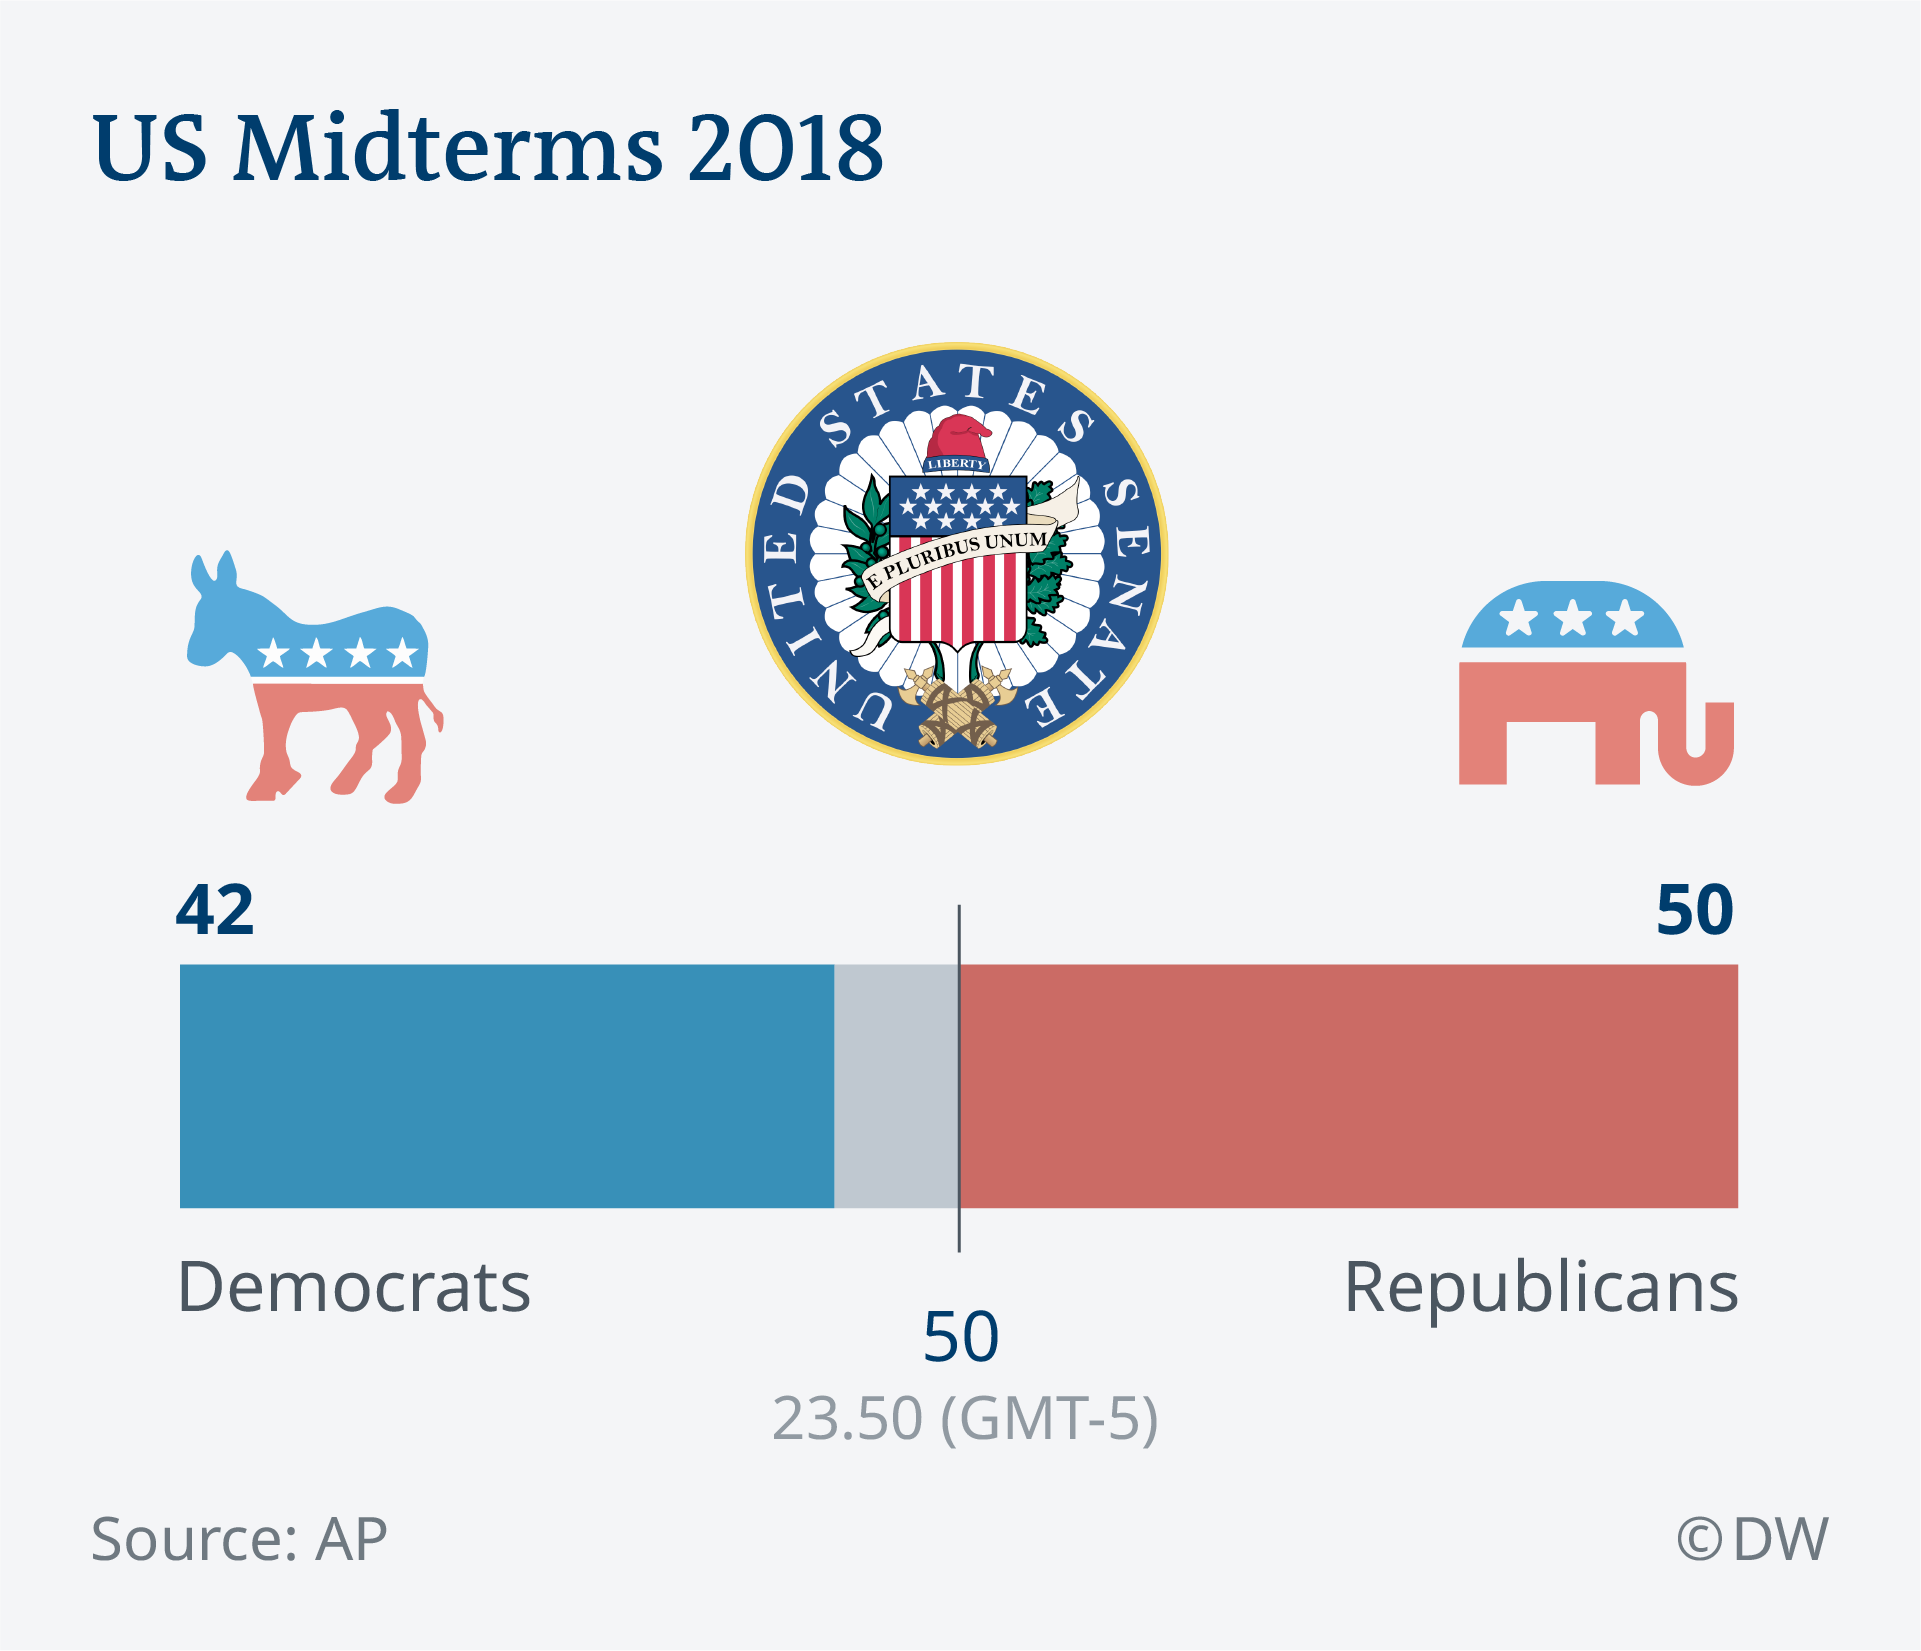 US Midterms 2018